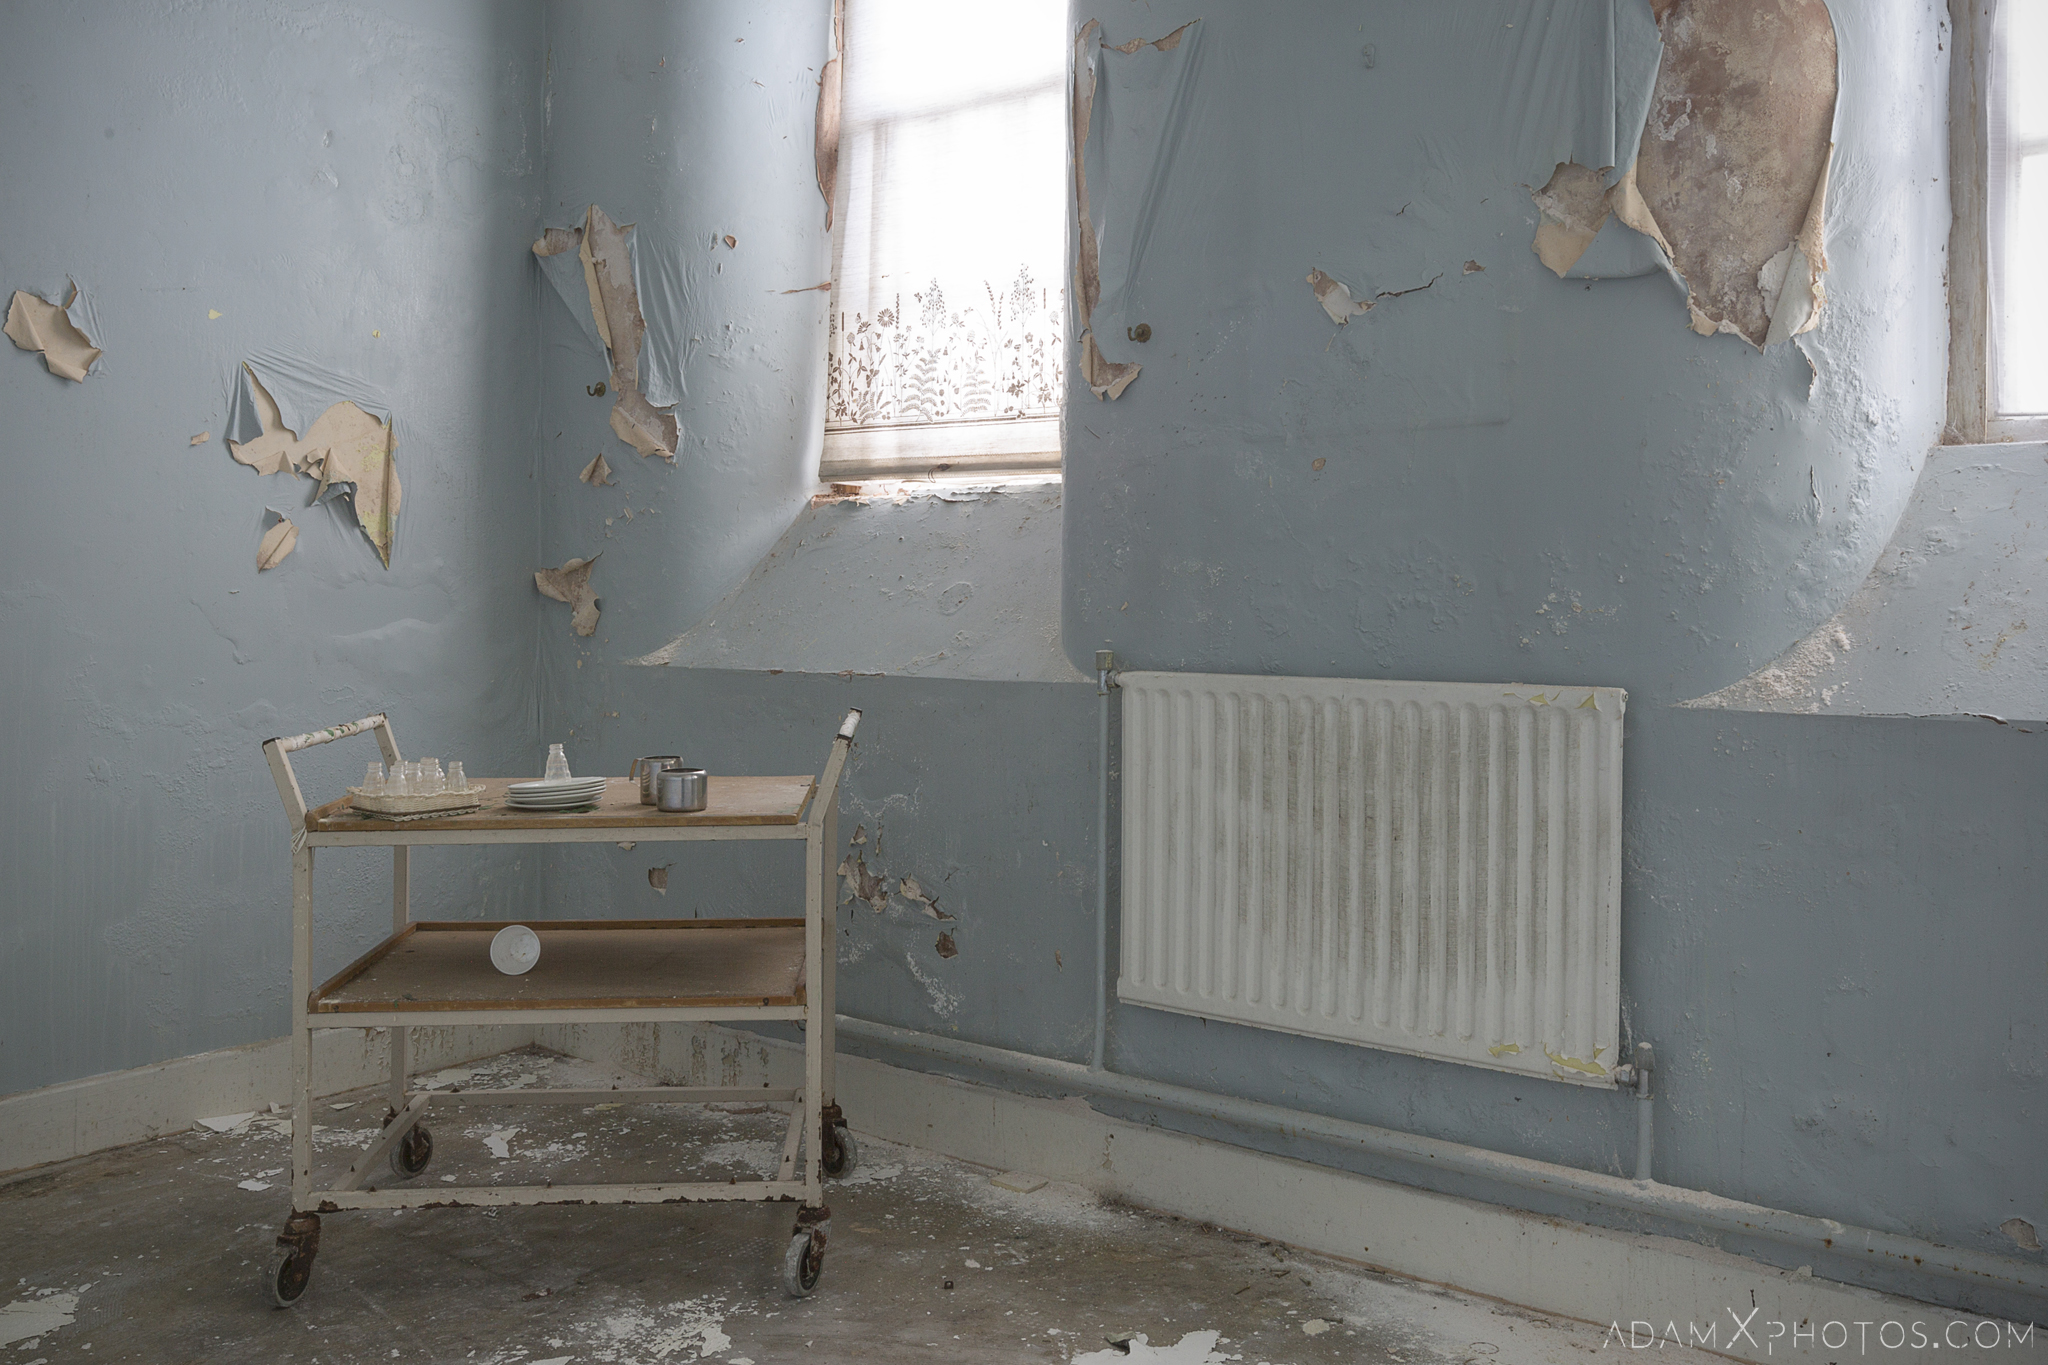 tea cart peeling paint Connacht District Lunatic Asylum St Brigid's Hospital Adam X Urbex Urban Exploration Ireland Ballinasloe Access 2017 Abandoned decay lost forgotten derelict location creepy haunting eerie